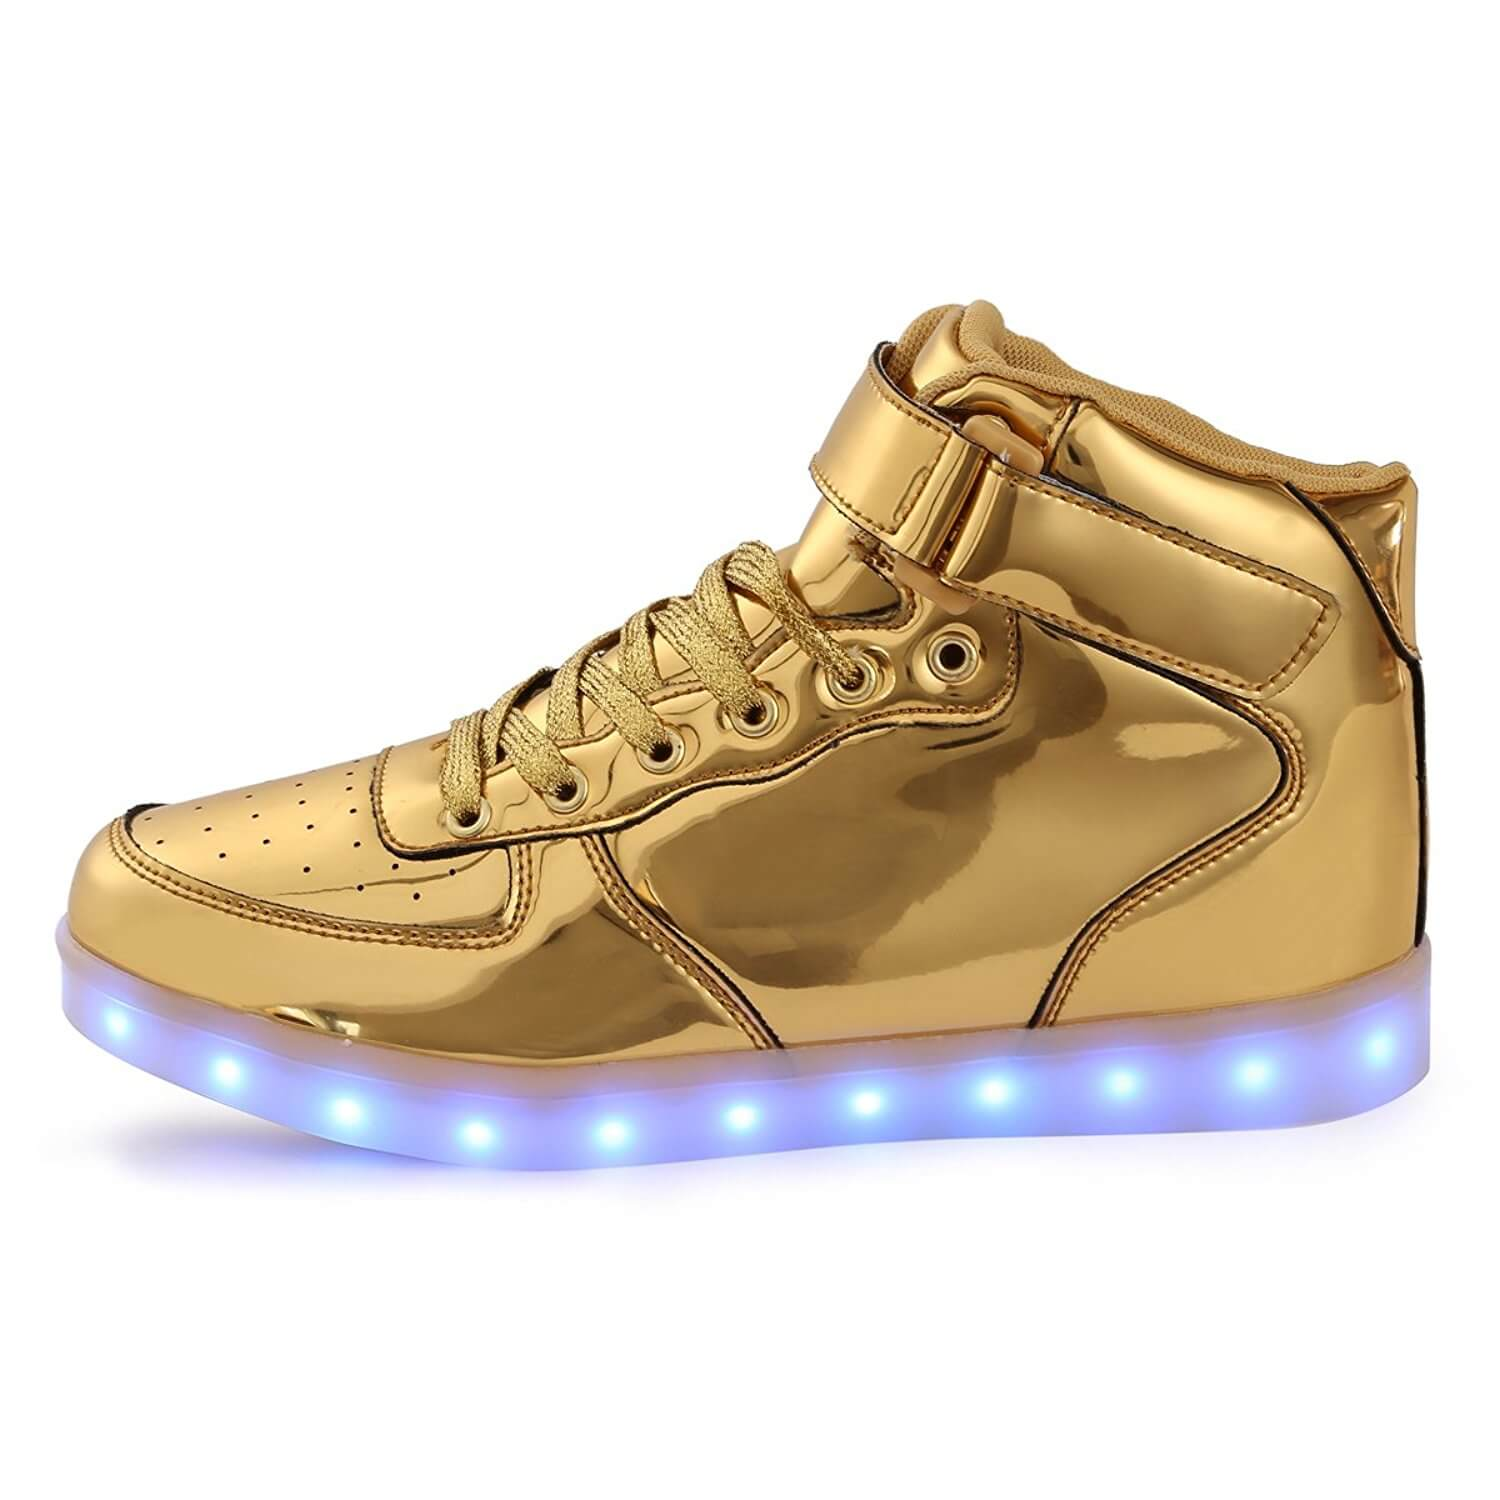 gold sneakers led shoes kids high top gold MDAQIDW